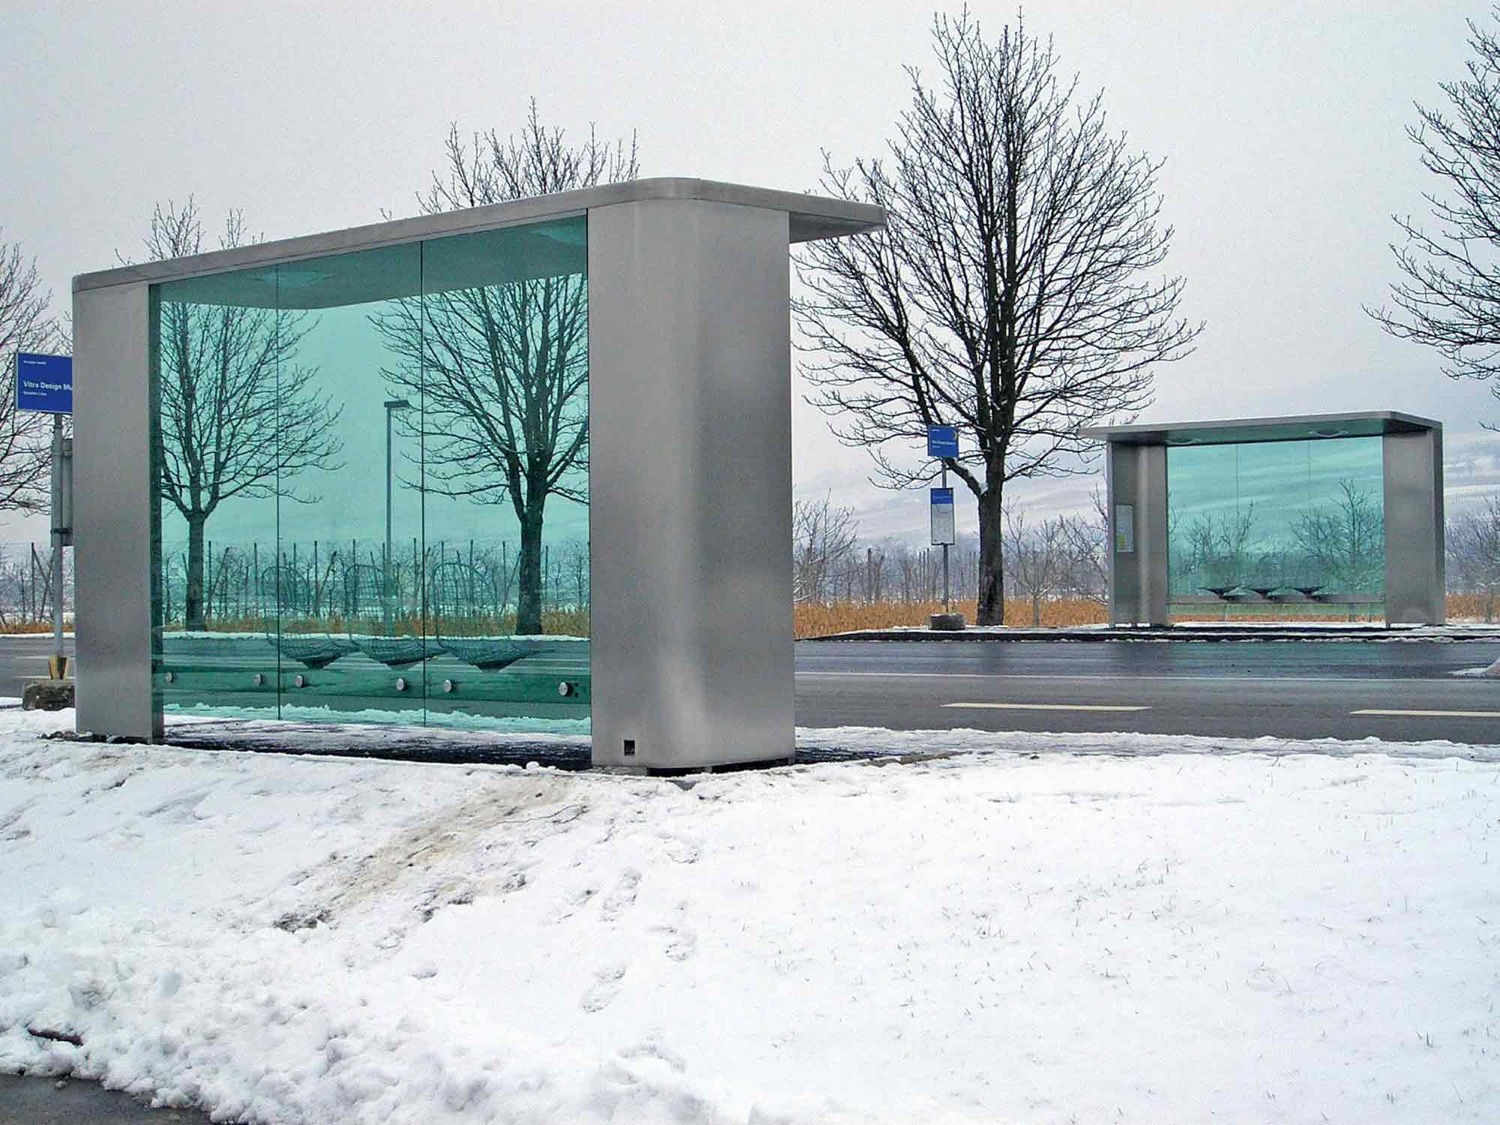 Bus Stop (2006). A pair of bus shelters that were designed for the main road near Vitra's Weil am Rhein site.